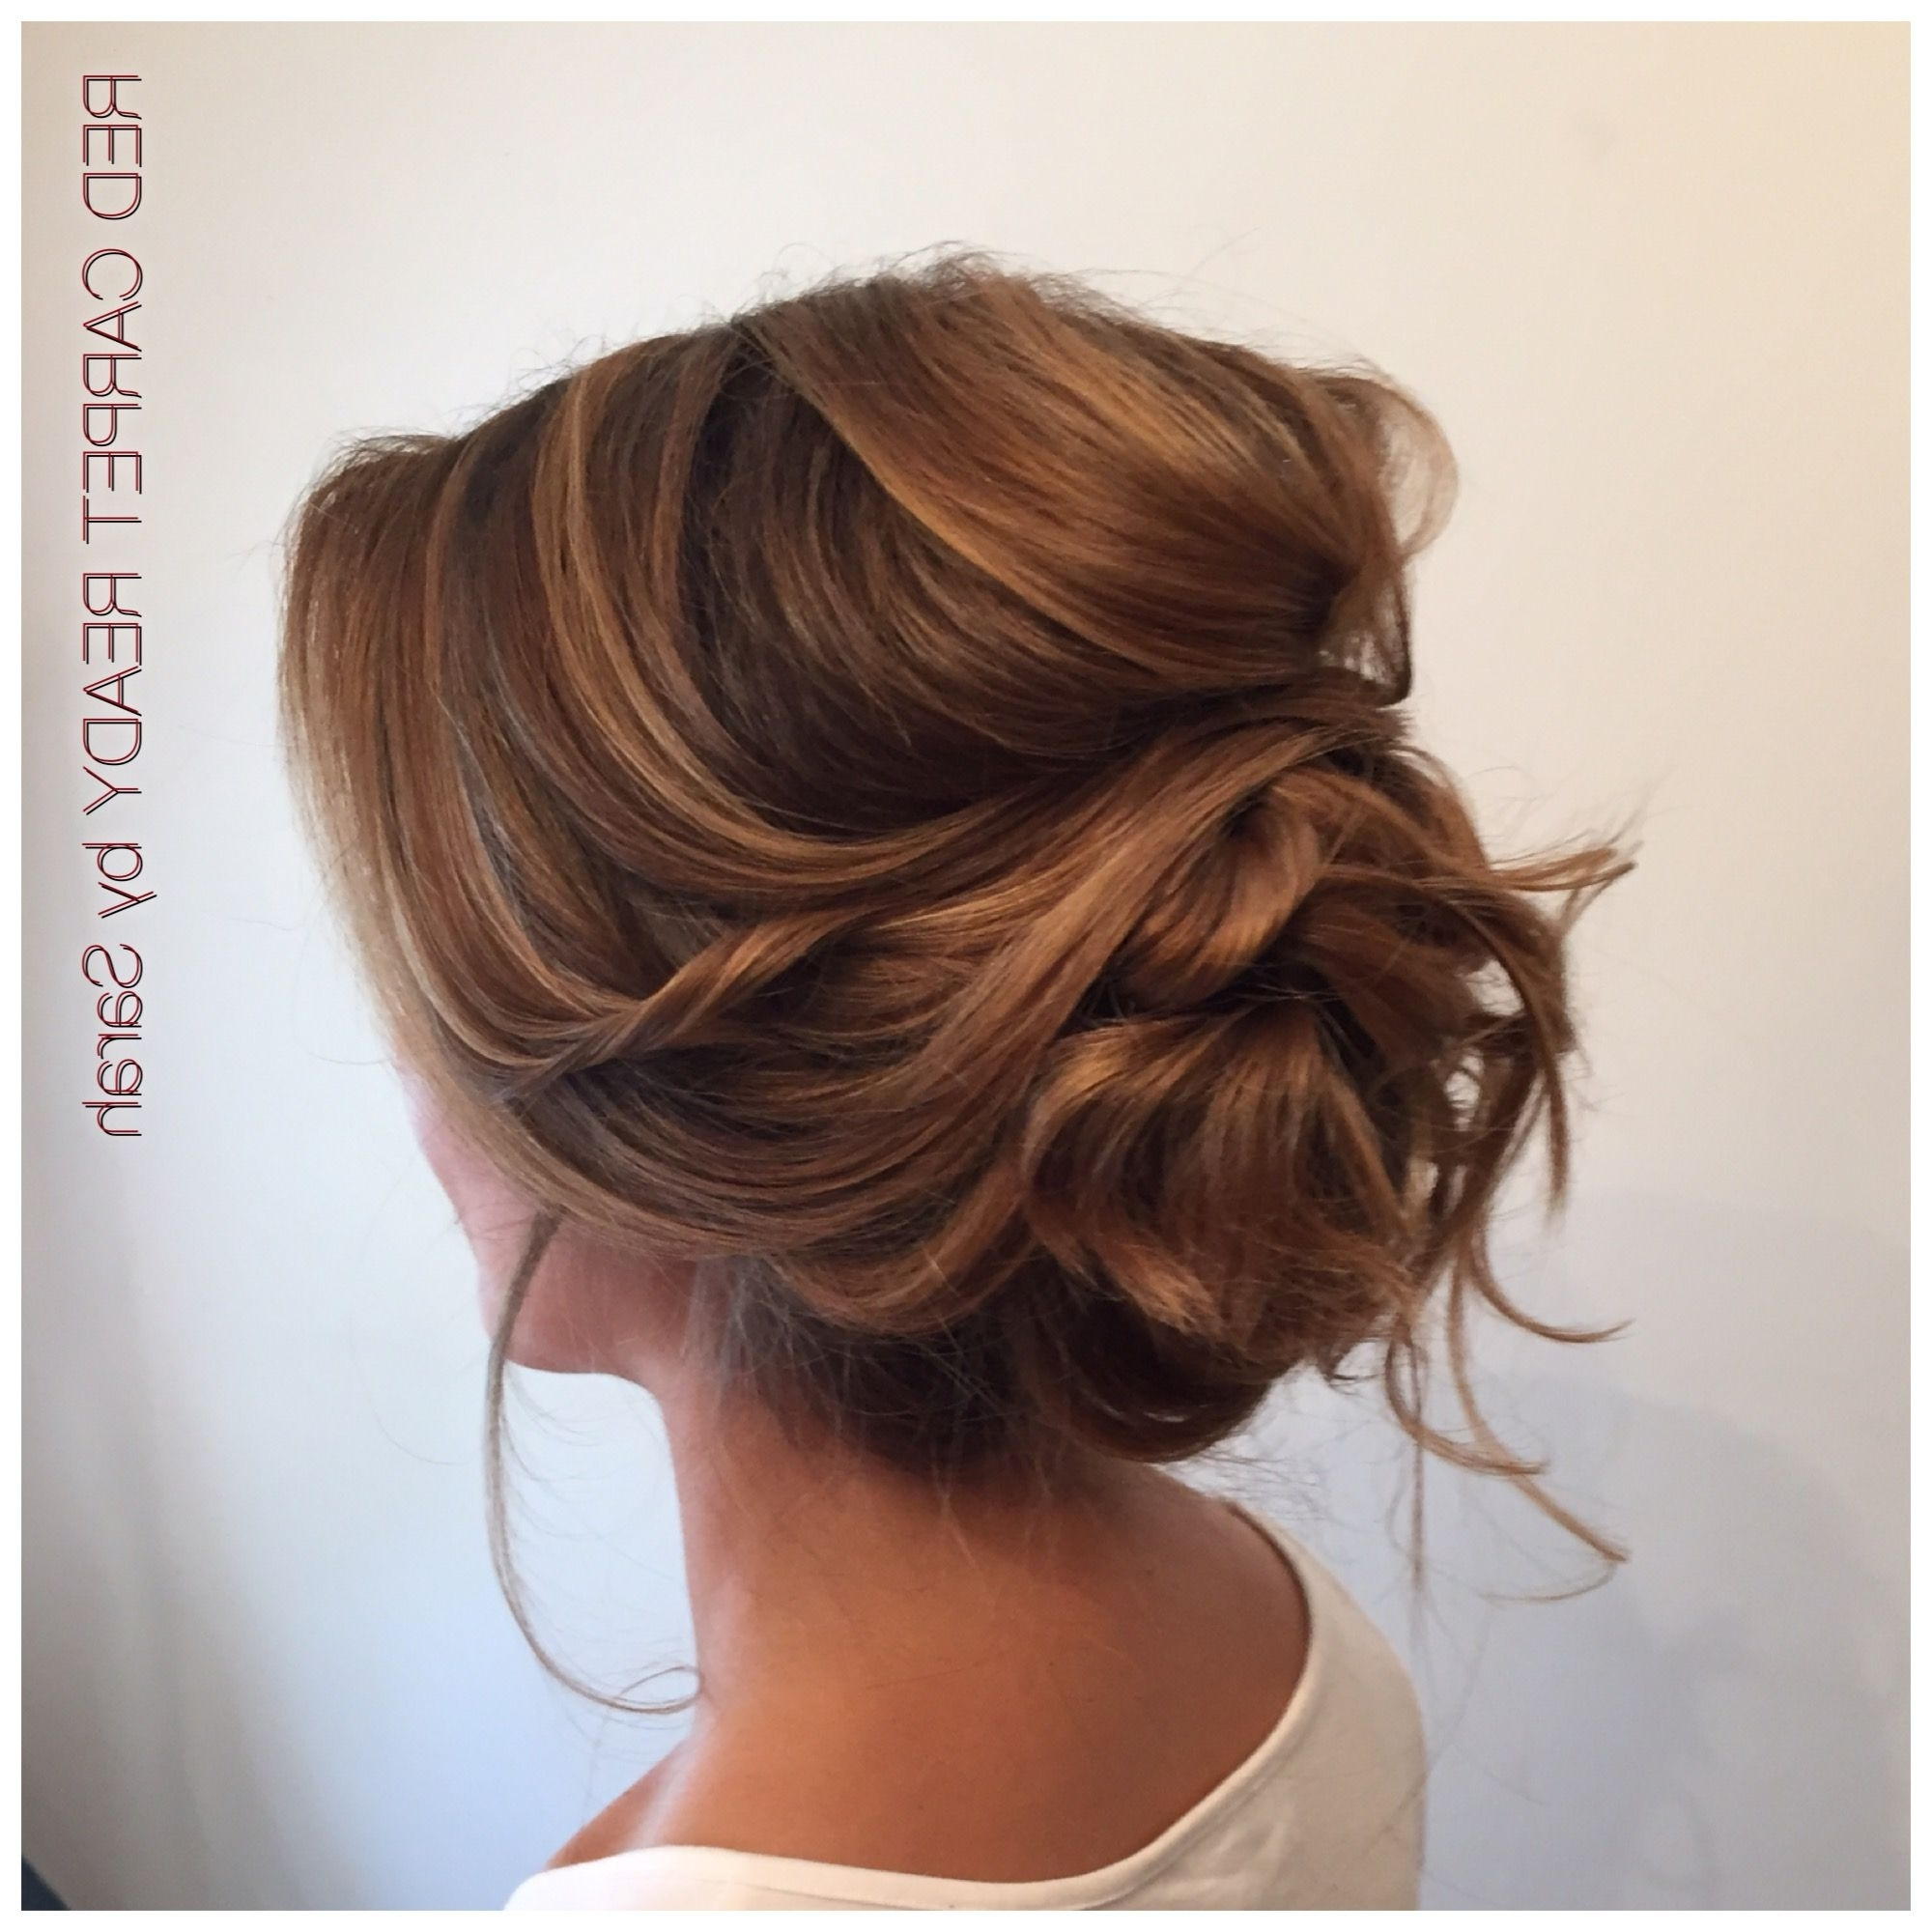 Soft Low Voluminous Updo Hairme | [Hair] Trends | Pinterest Within Soft Updos For Long Hair (View 15 of 15)